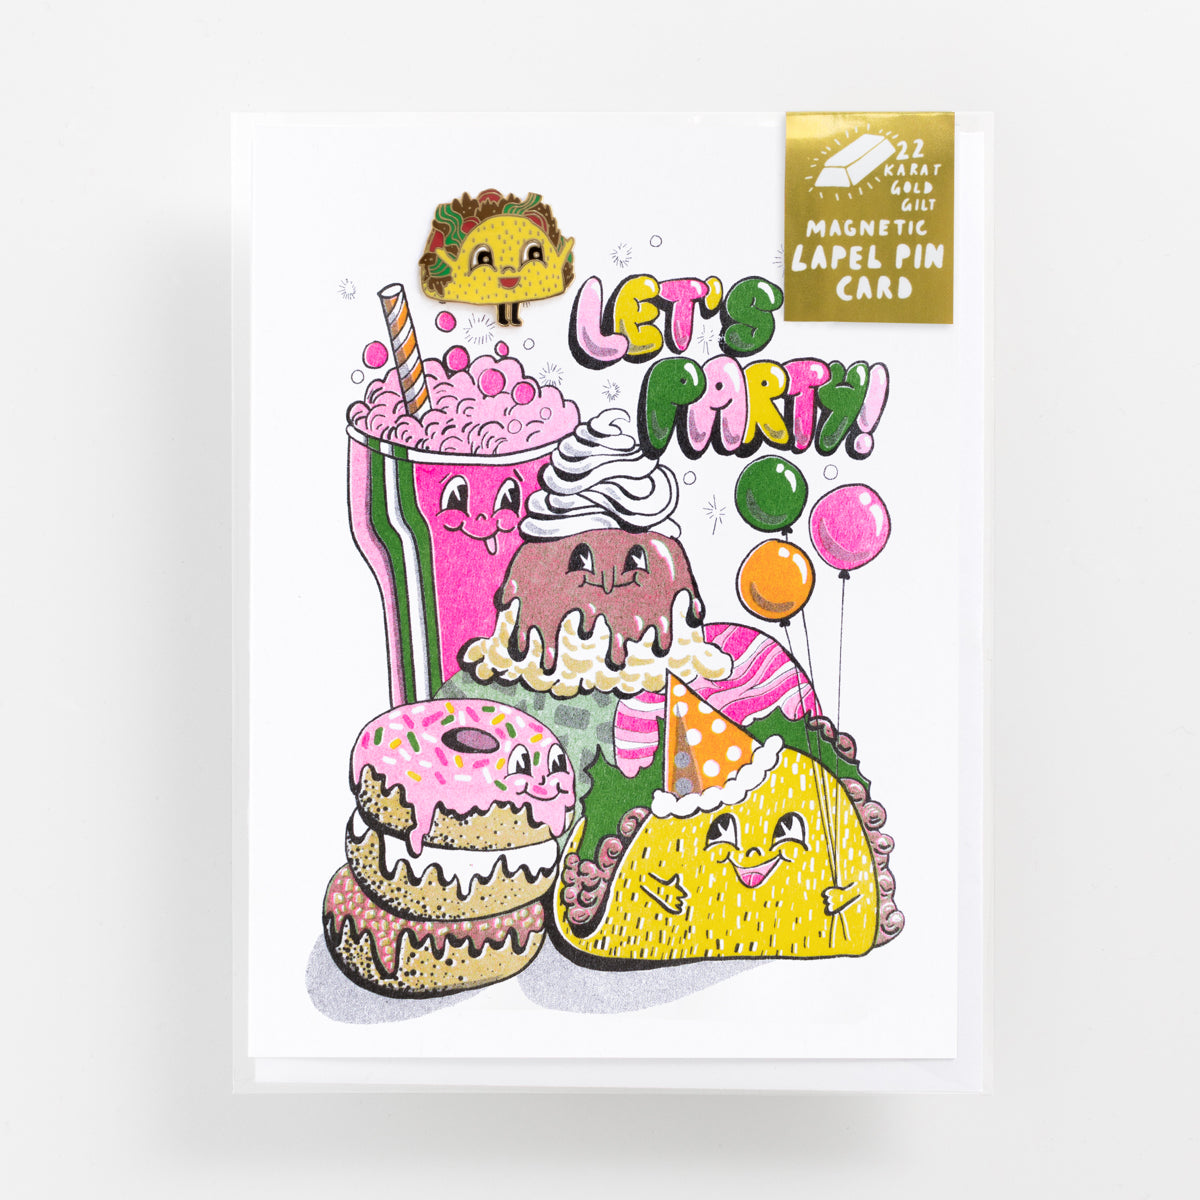 'Let's Party' risograph greeting card with 22k gold gilt magnetic taco enamel lapel pin